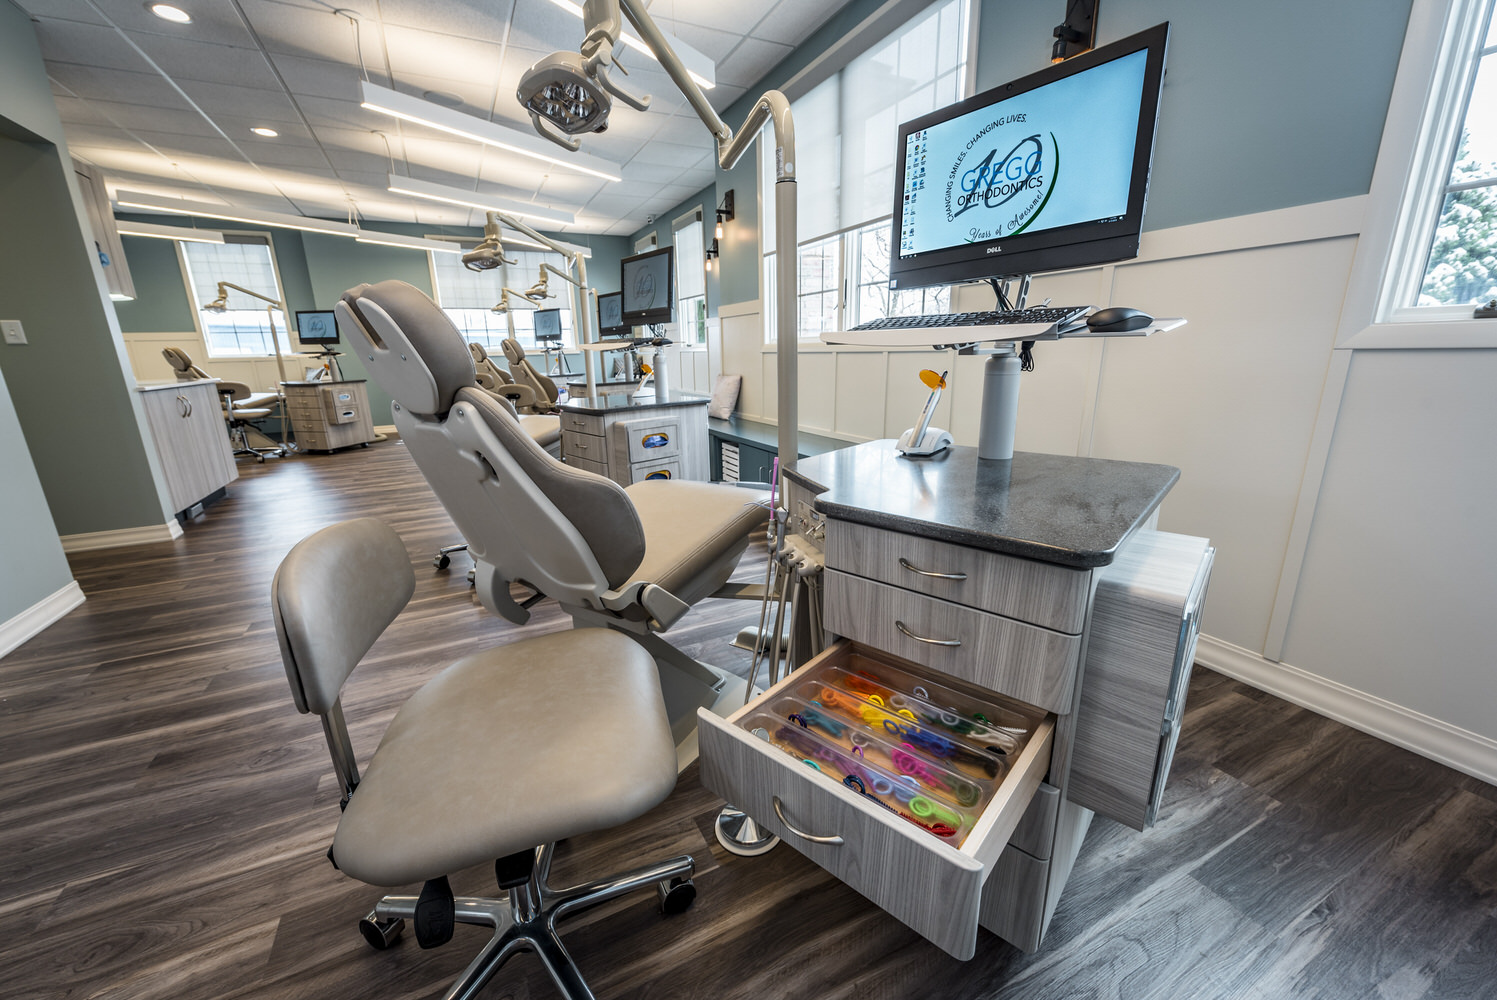 Commercial, Dental Office Furniture